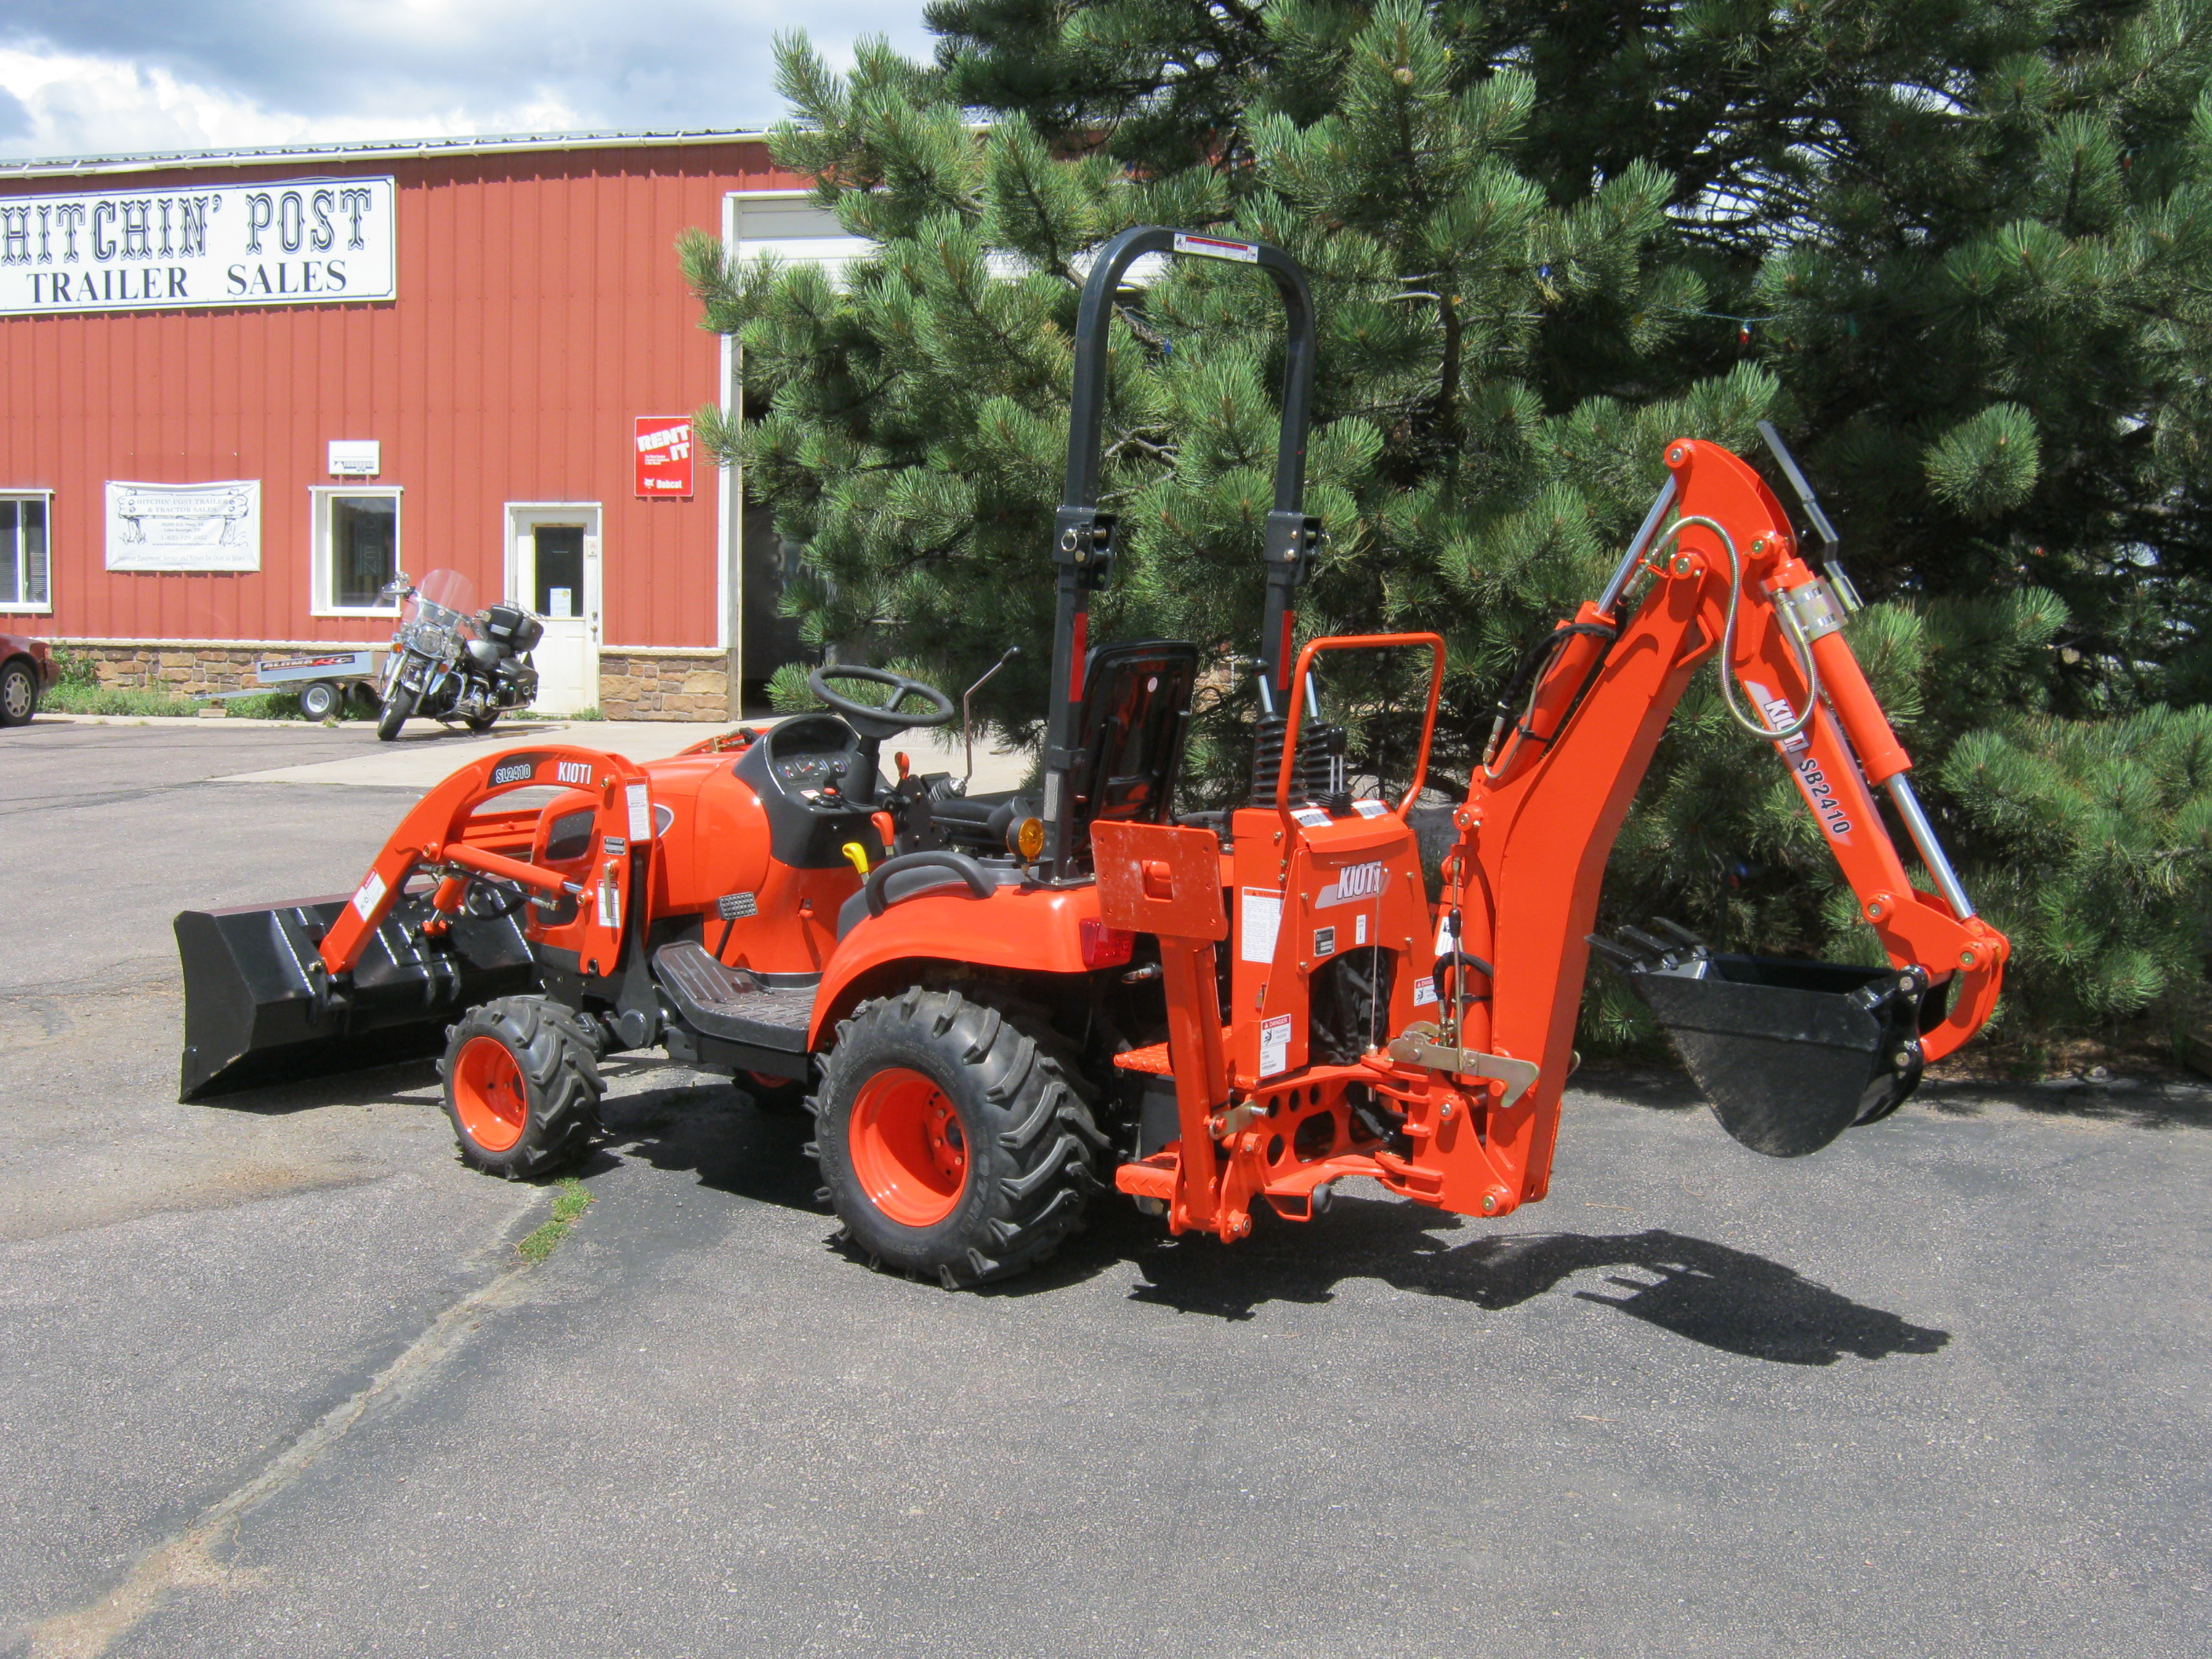 34HP Kioti Compact Tractor and Rear Backhoe